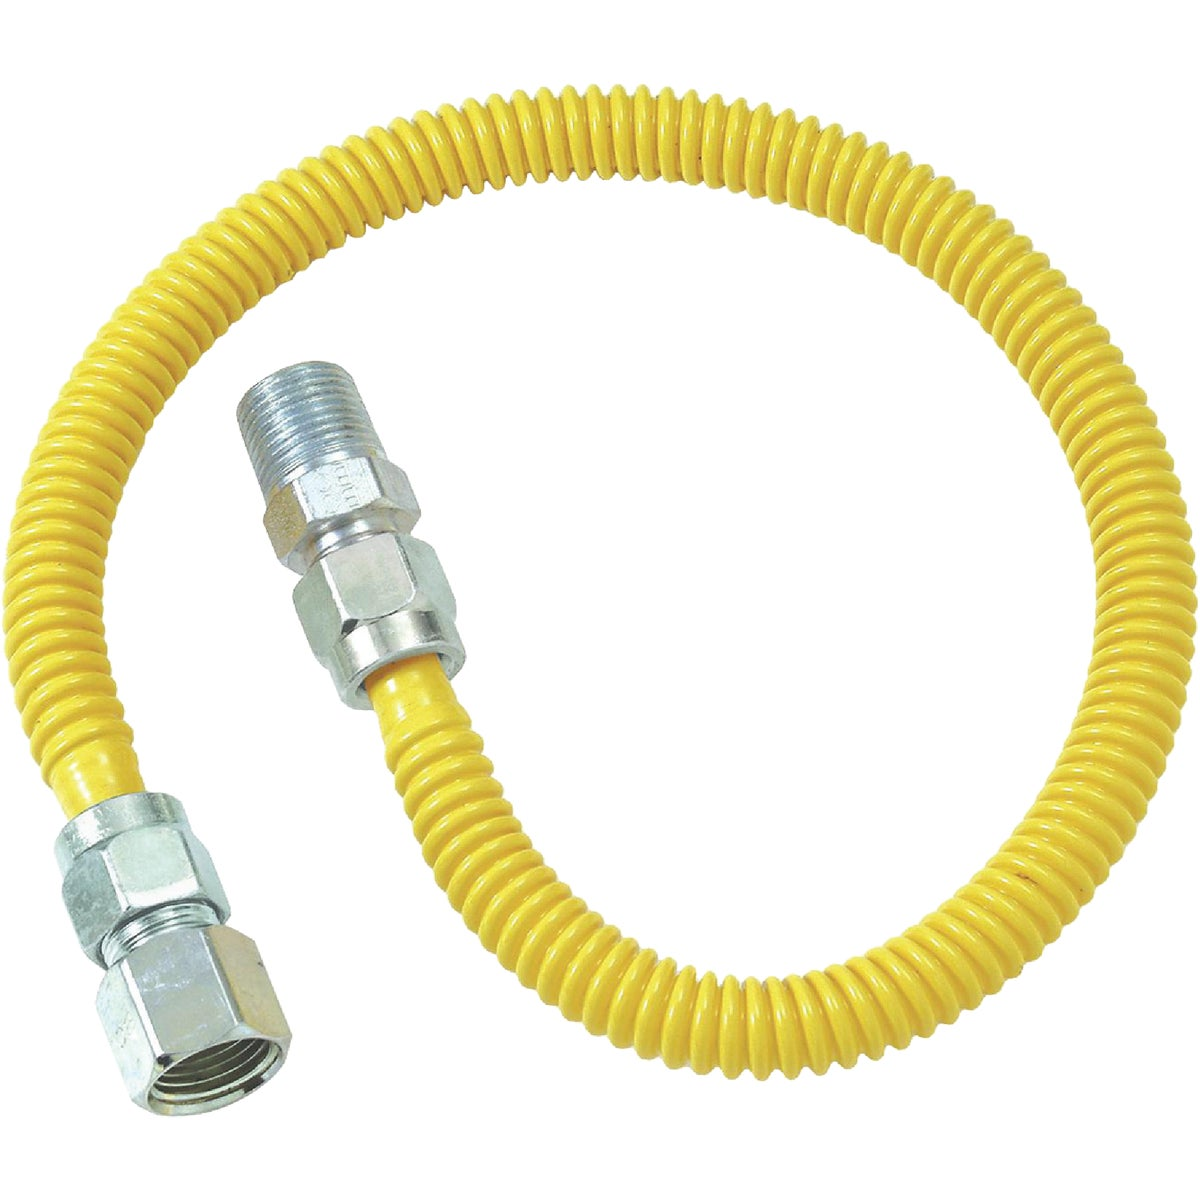 1/2X36 GAS CONNECTOR - CSSD54-36P by Brass Craft